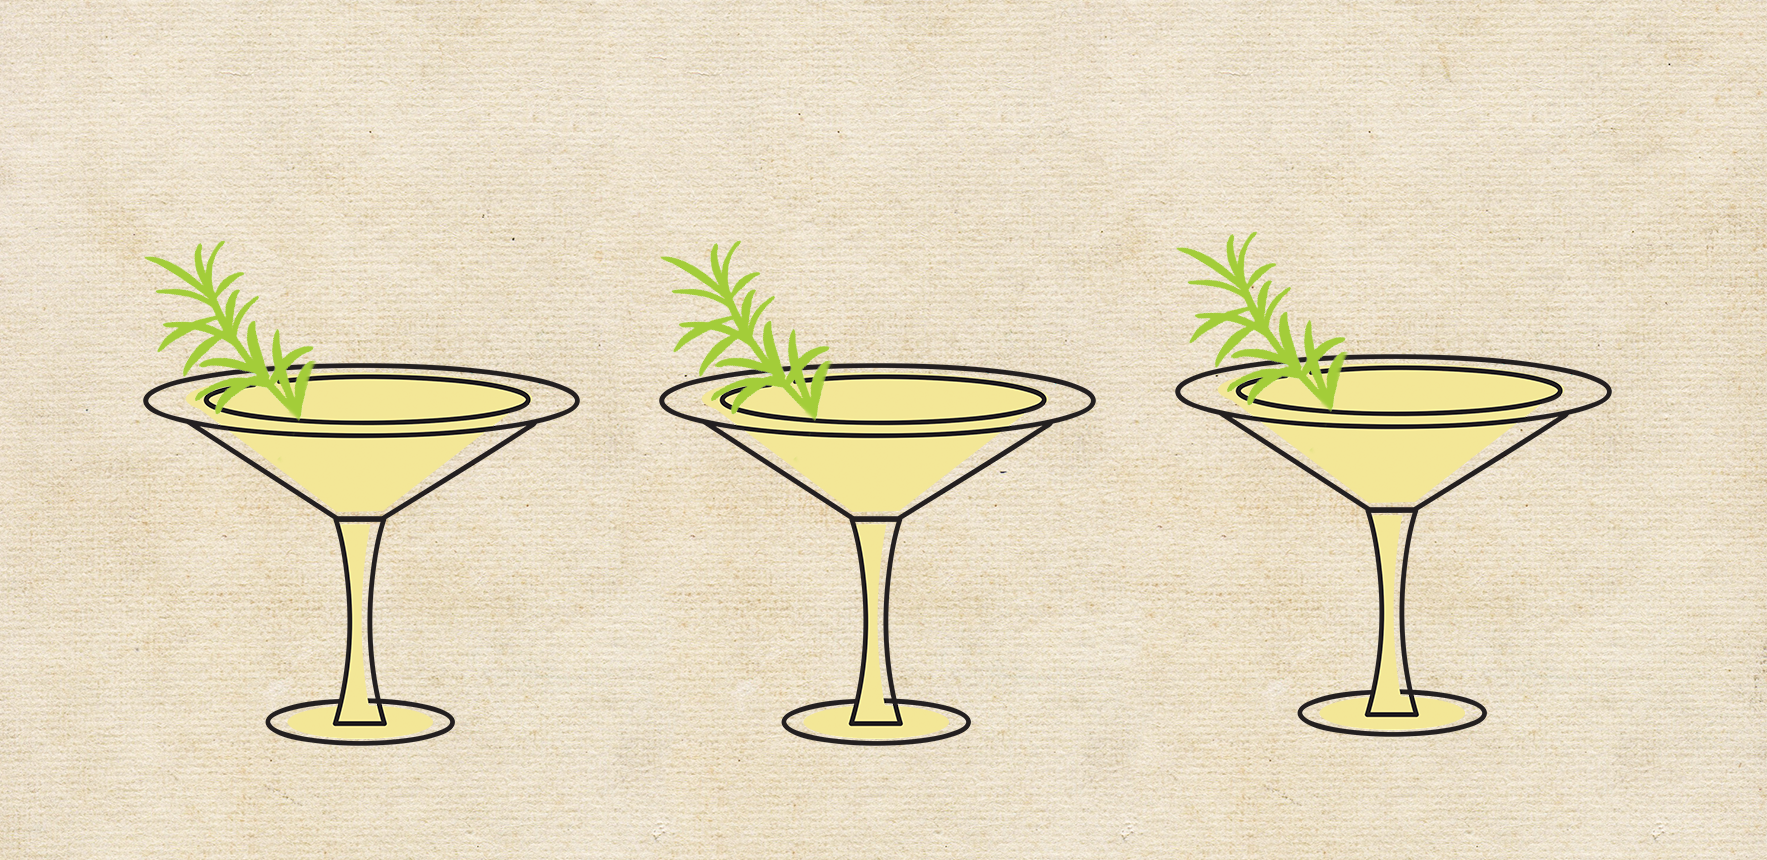 Cultivated Cocktails image